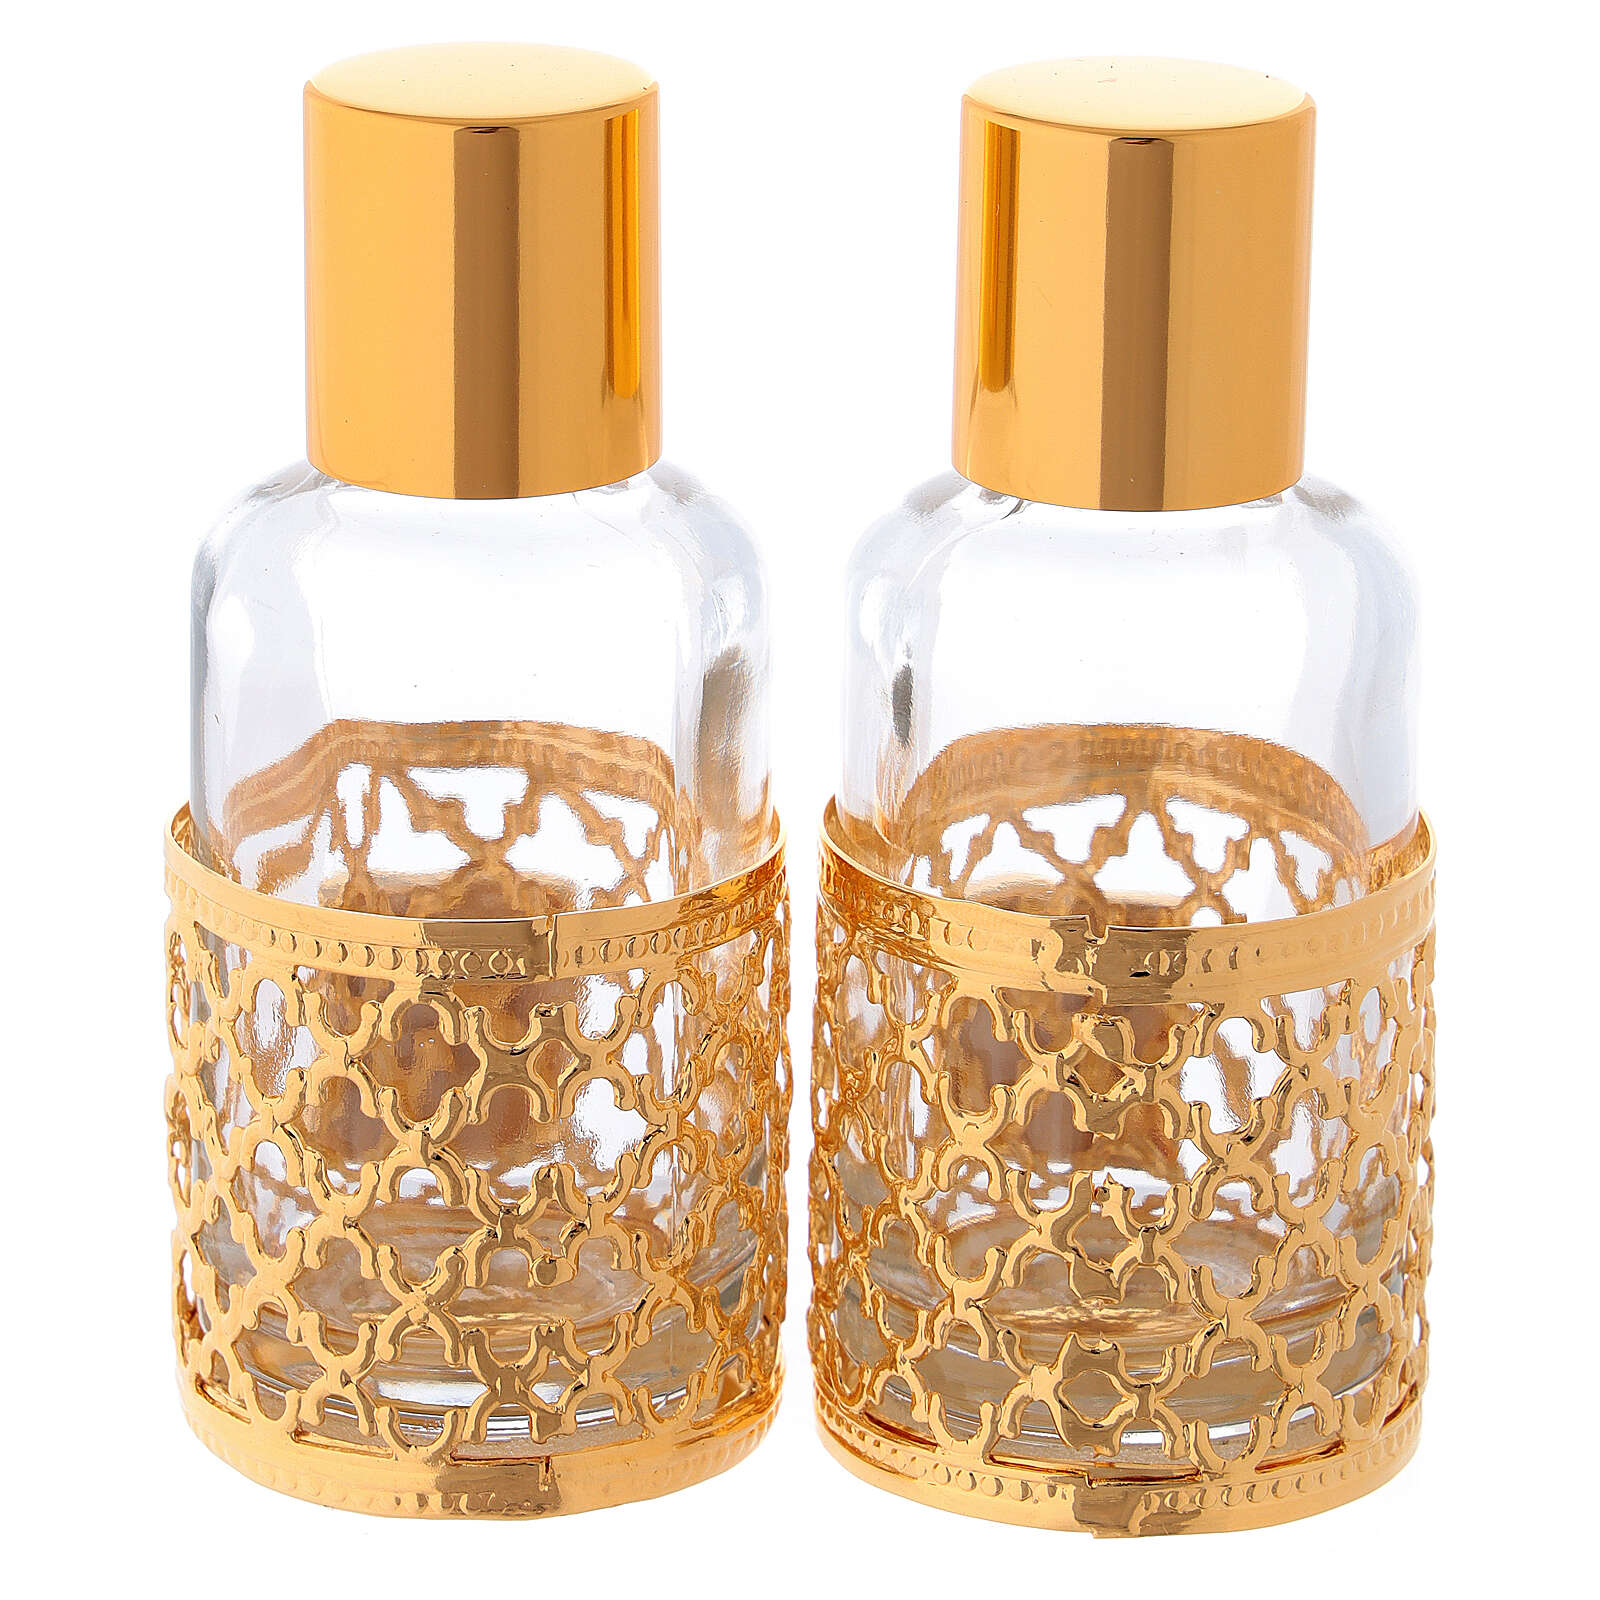 Bottles in glass with grapefruit decoration, golden 30 ml 4